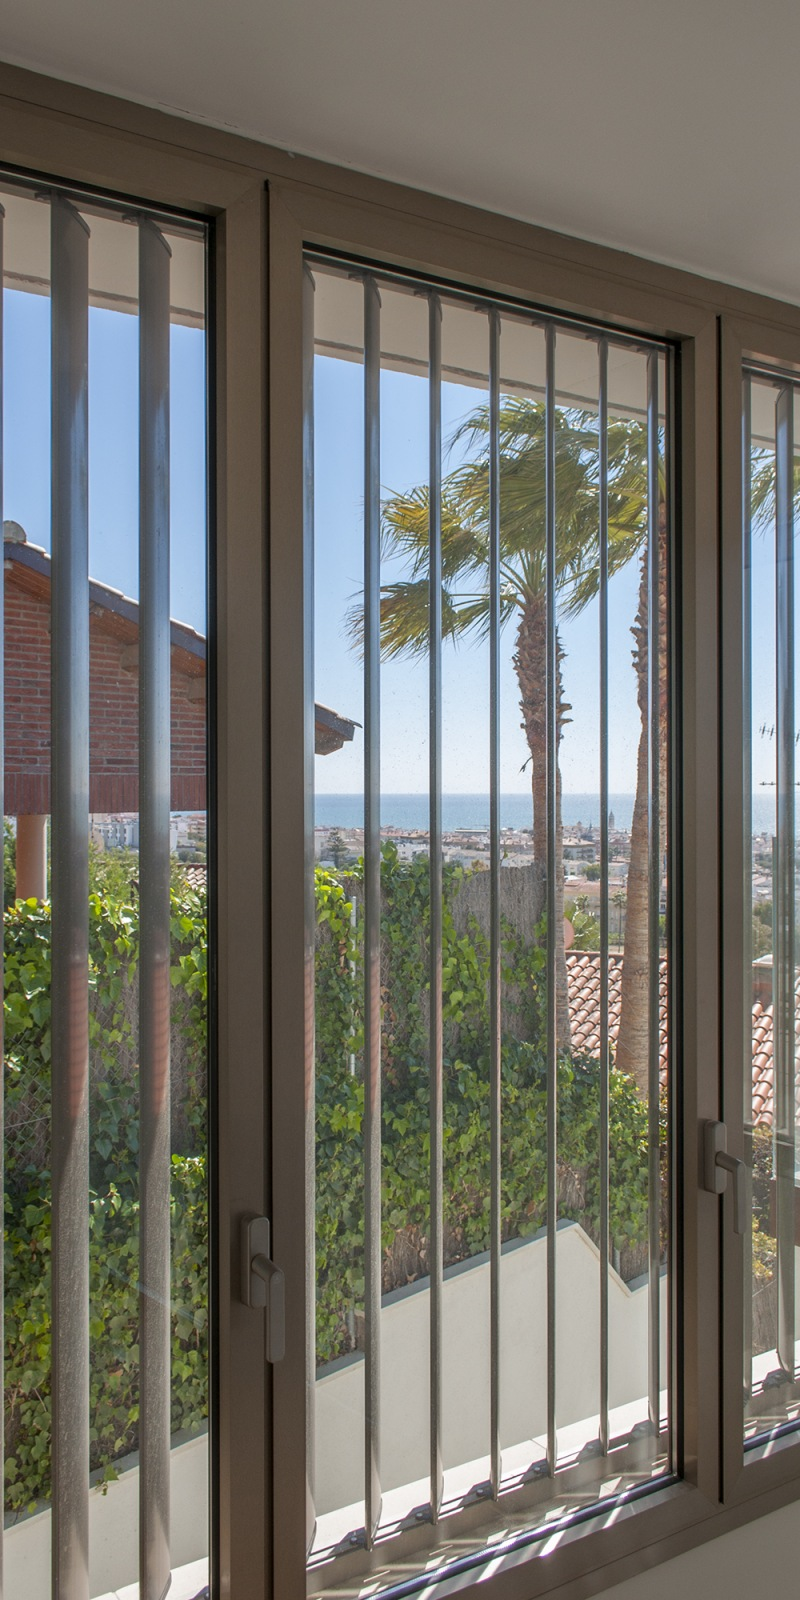 17-a-rardo-architects-houses-in-sitges-volume-window-seaview-